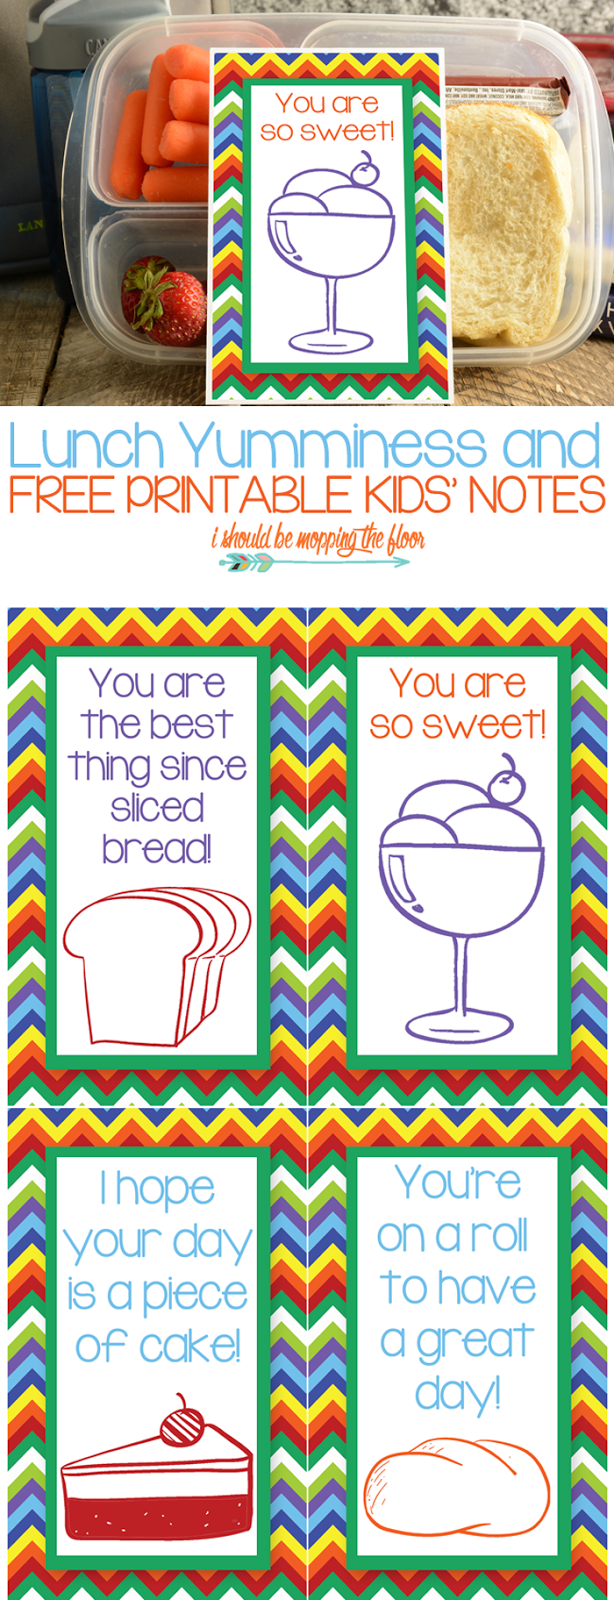 Large Printable Lunch Notes: a larger size for littler hands and eyes to find easier! Perfect for your elementary or preschool kids' lunches.